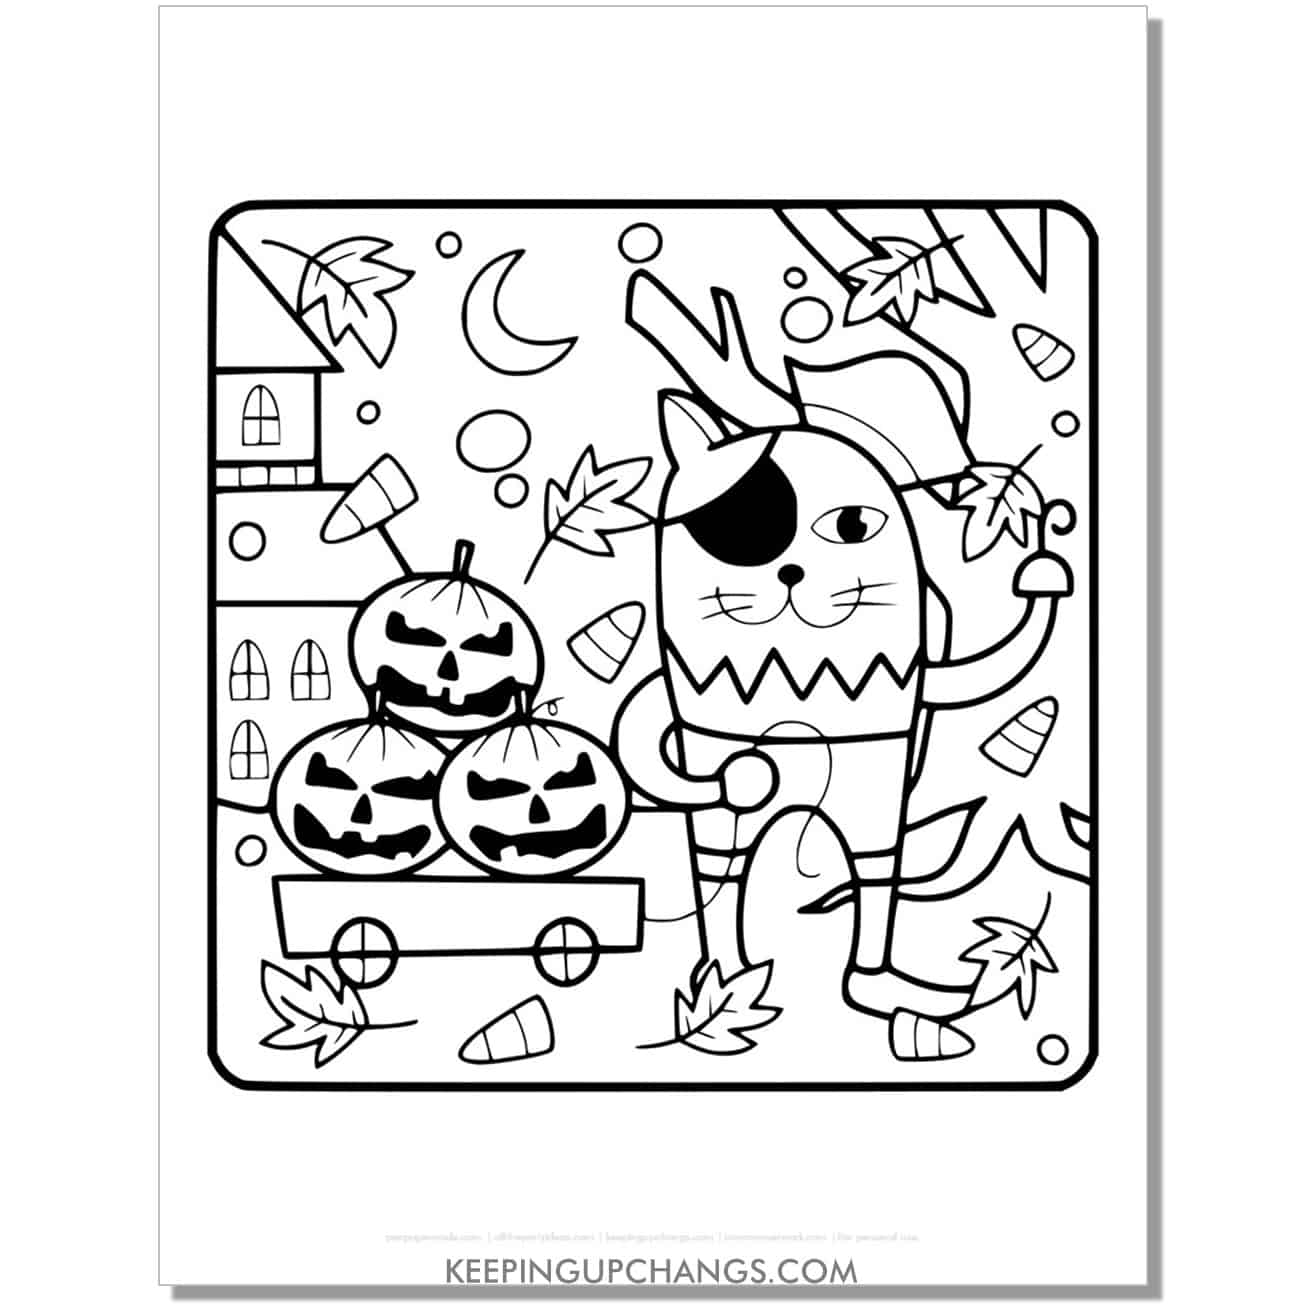 pirate cat coloring page for kids.